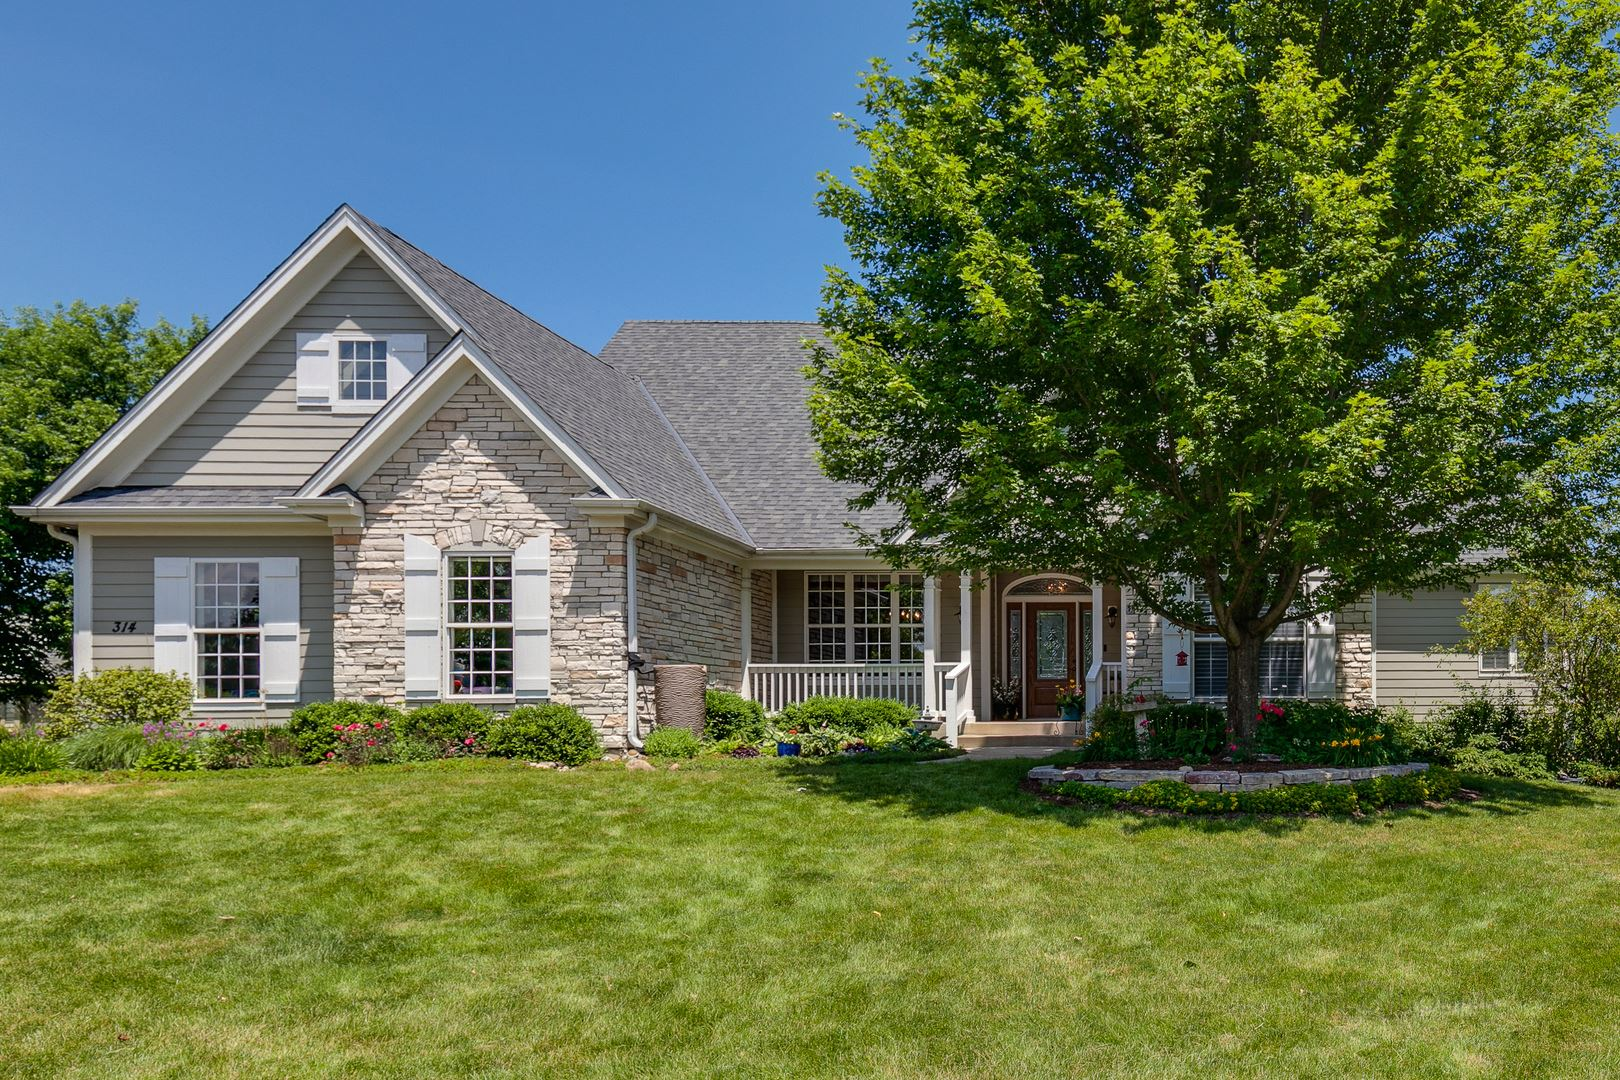 314 Kings Way, McHenry, IL 60050 - #: 10770120